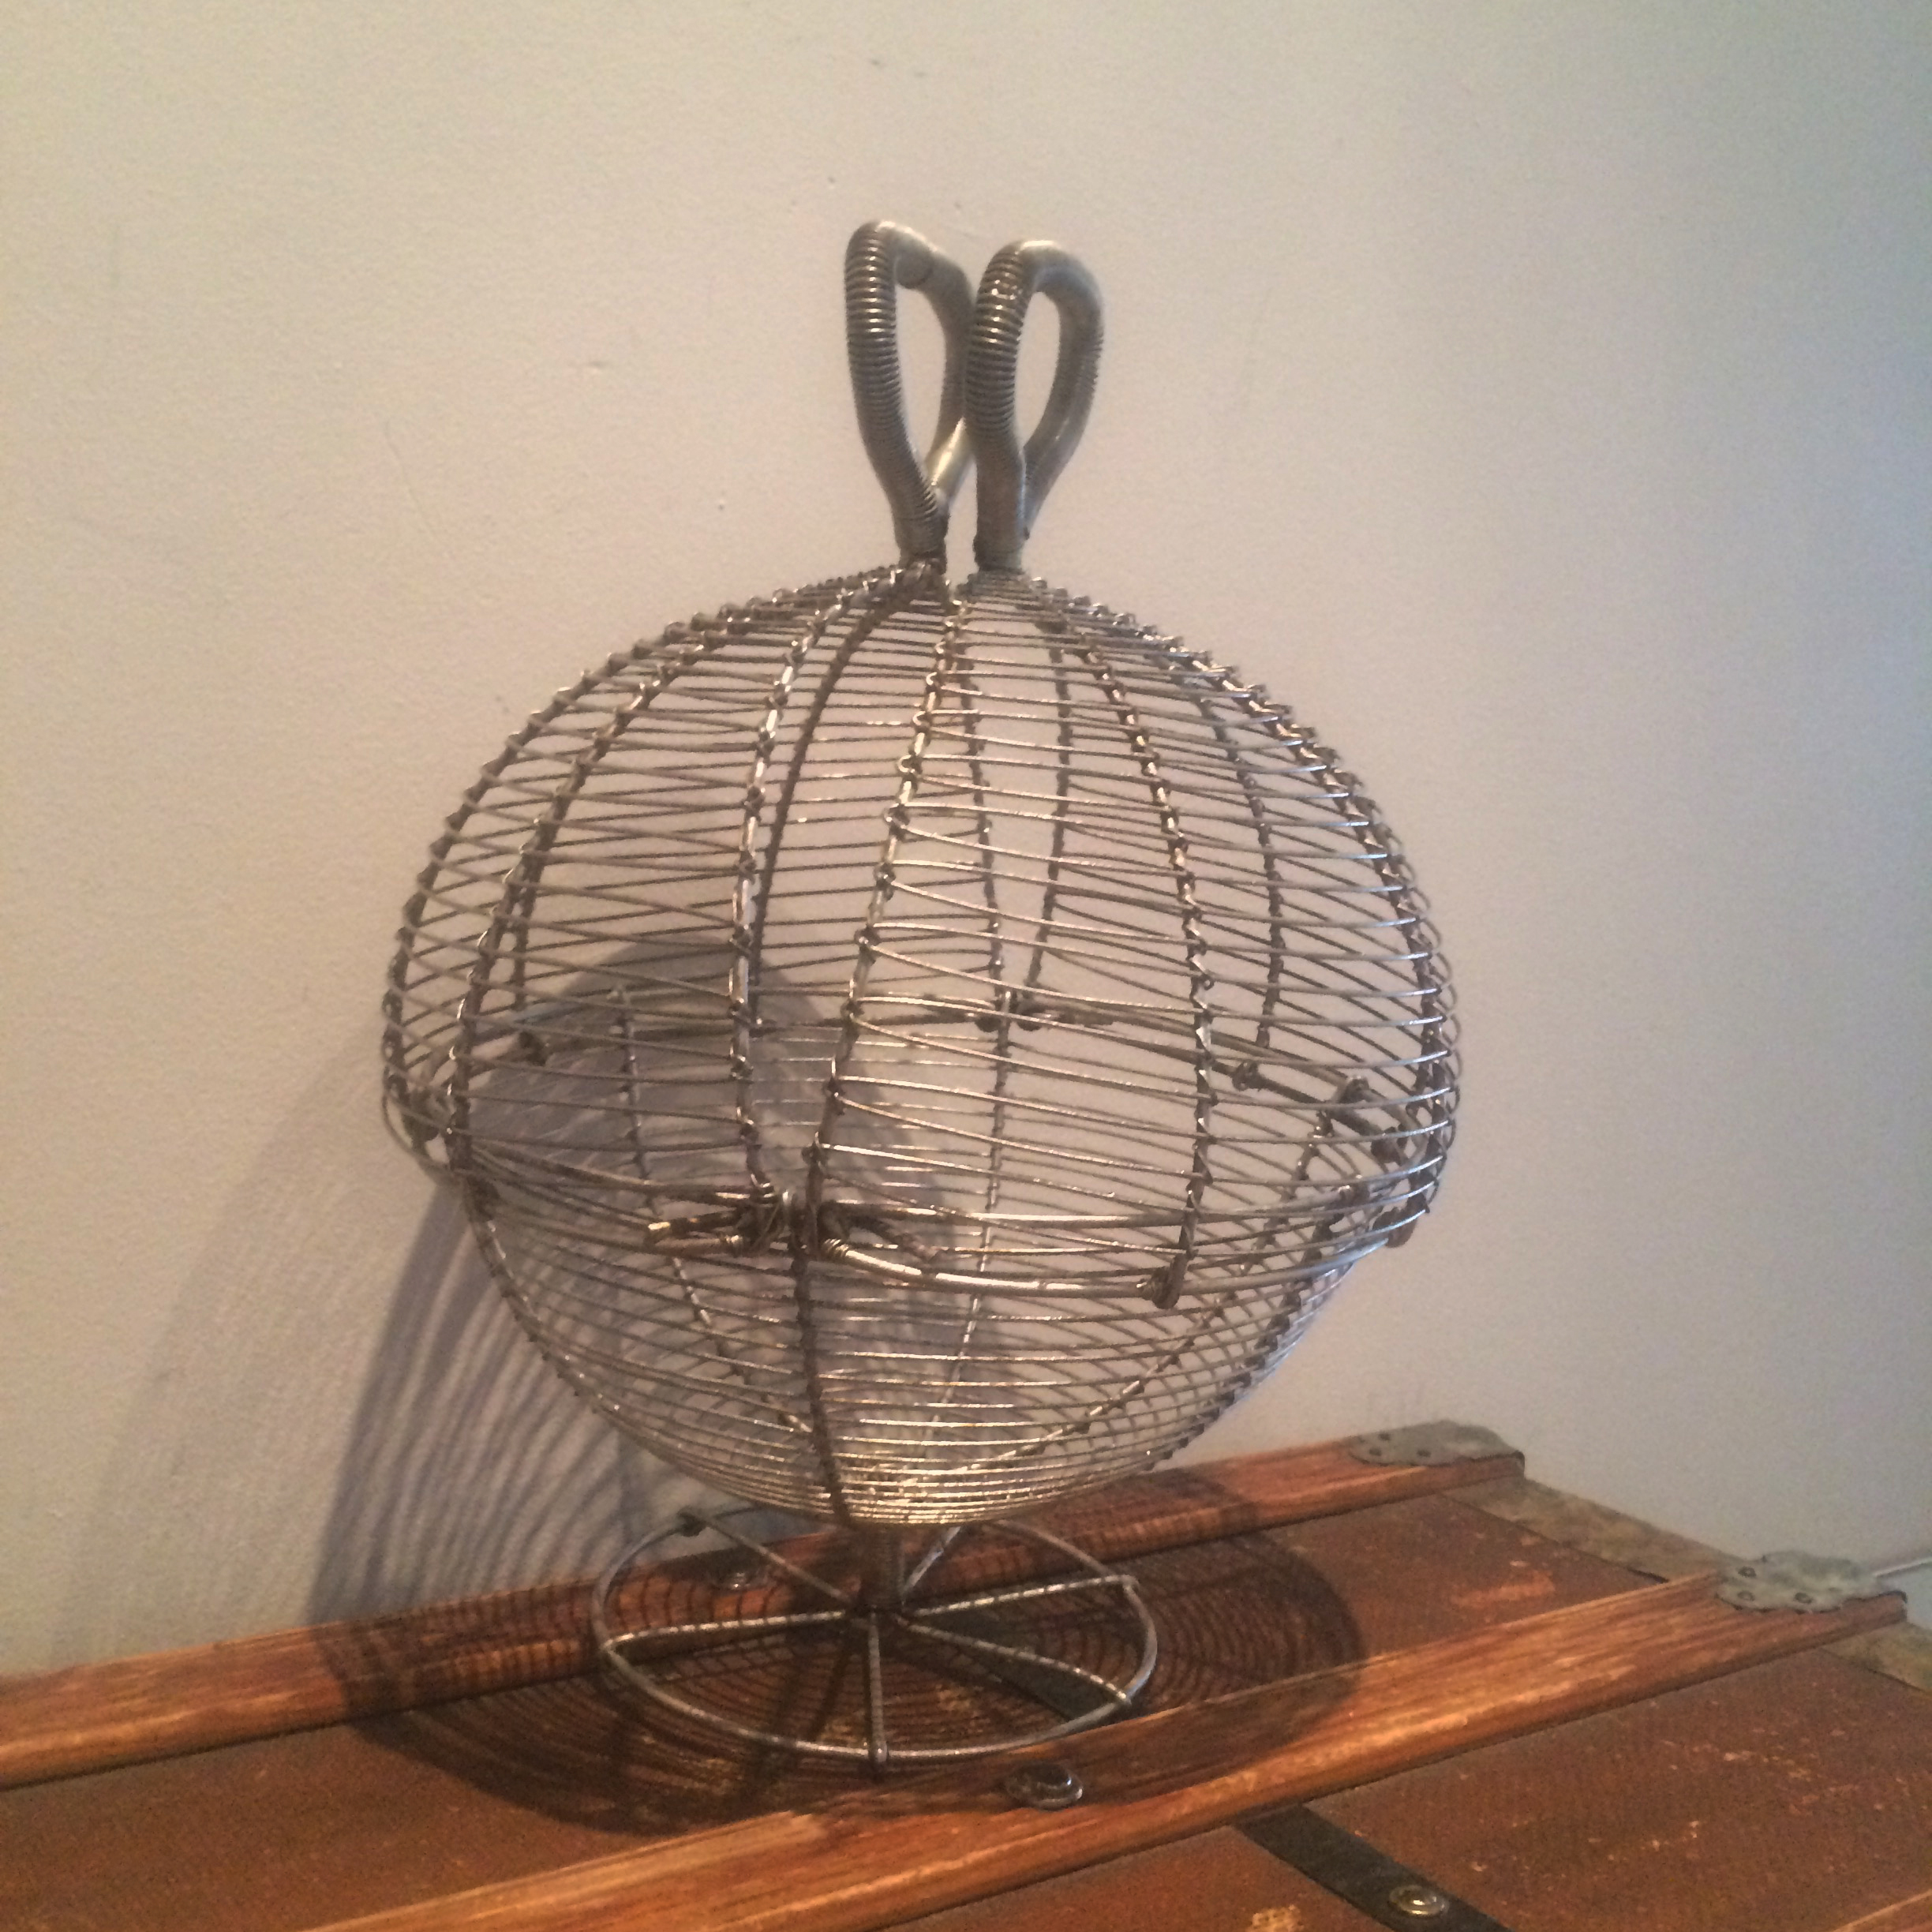 File:Wire egg basket closed.jpg - Wikimedia Commons